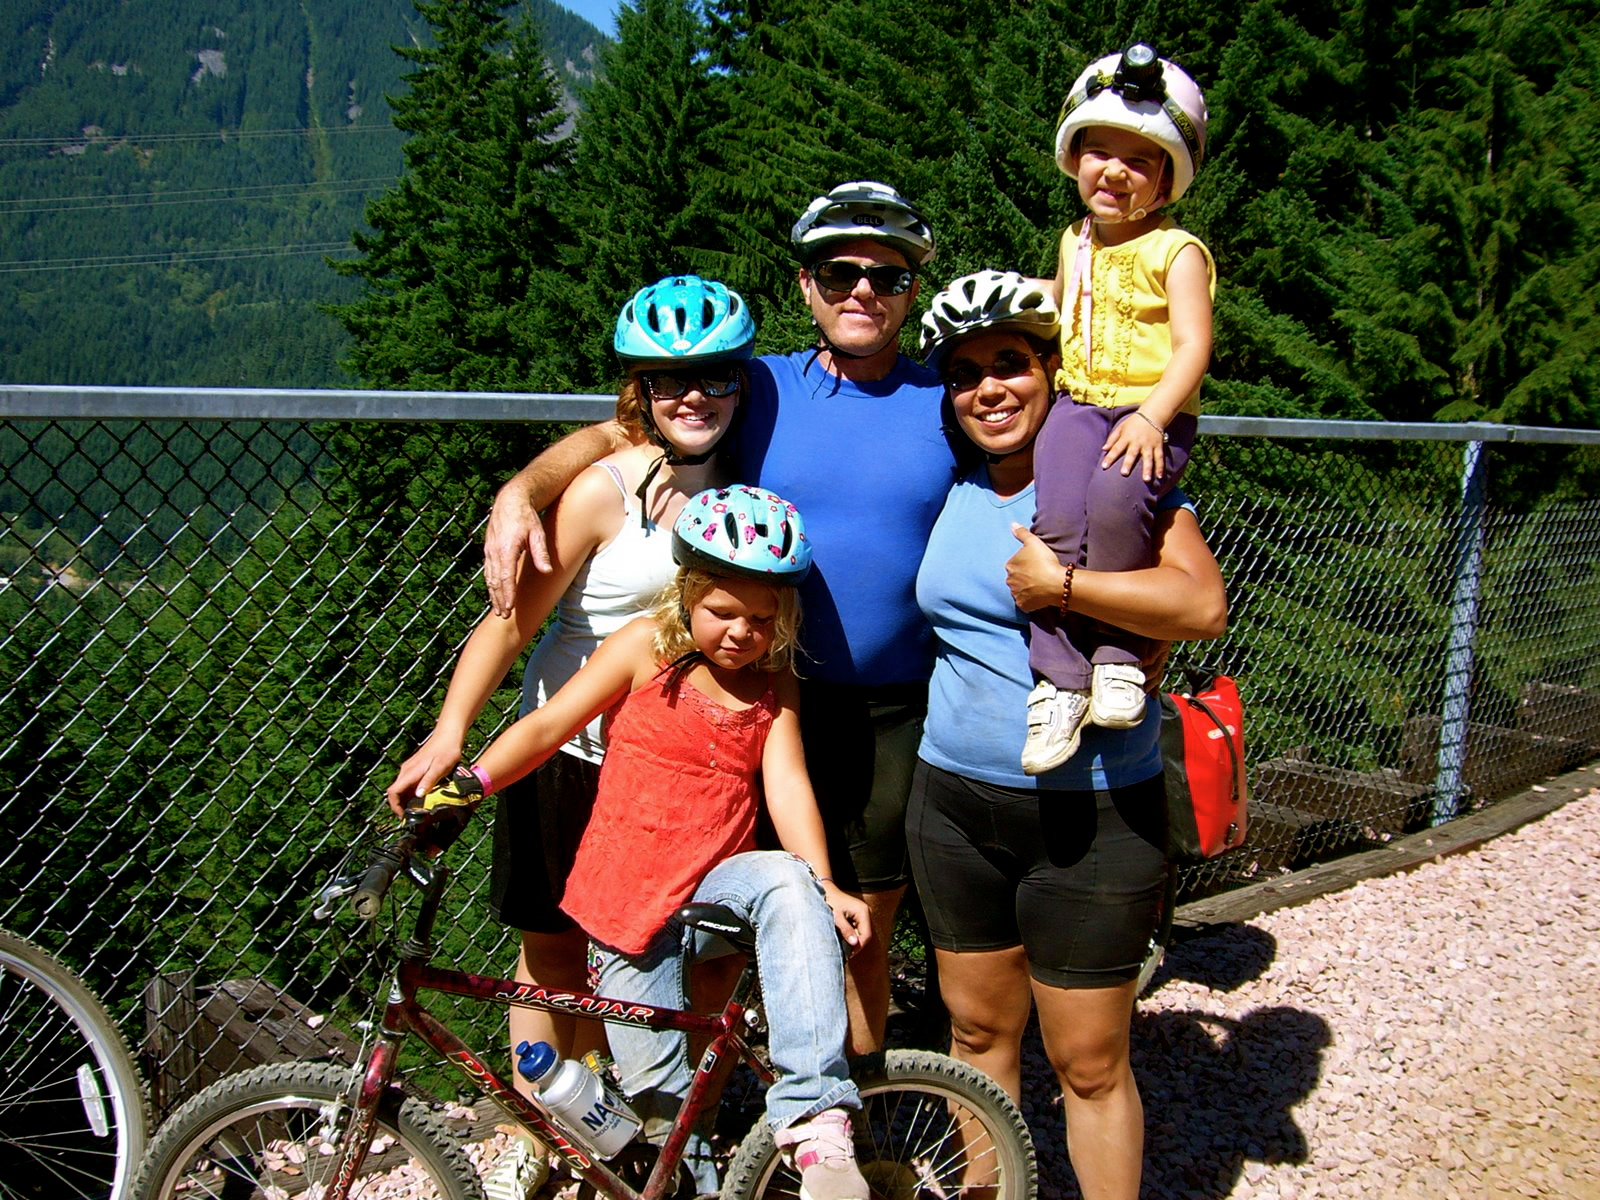 Railroad Trestles were fun places to take a break! Family Bike Ride, Iron Horsie Trail, WA, on Sunday 20 August 2006.